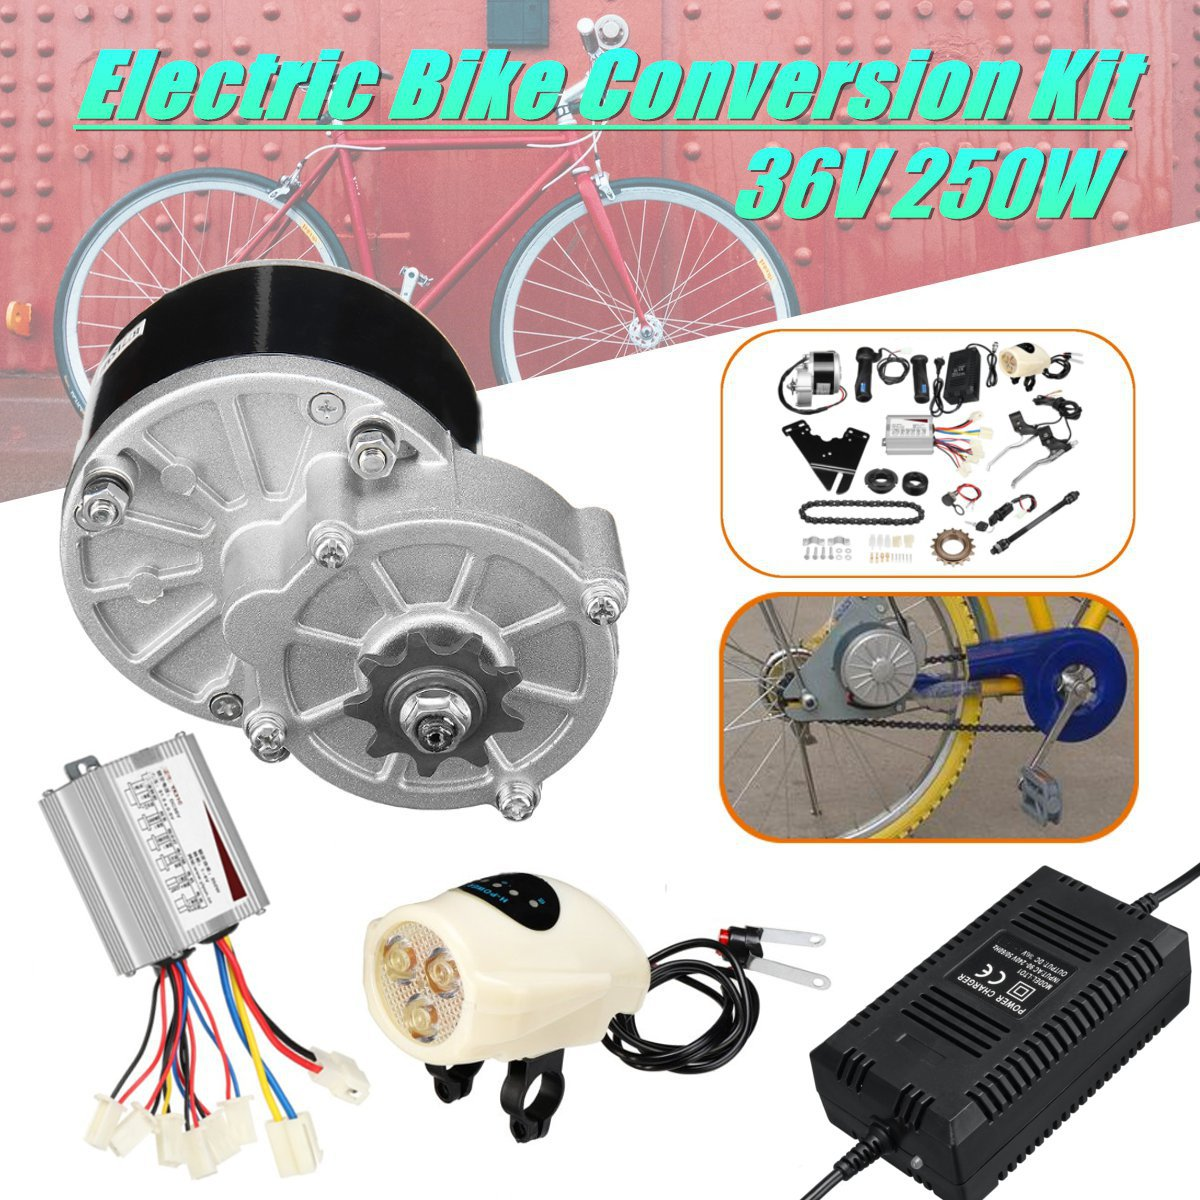 36V 250W Electric Bike Conversion Kit Controller Charger Speed Control Switch For 22-28'' Common Bicycle my1016z2 dc 36v 250w diy 22 28 electric motors for bikes electric bike kit electric bike conversion kit